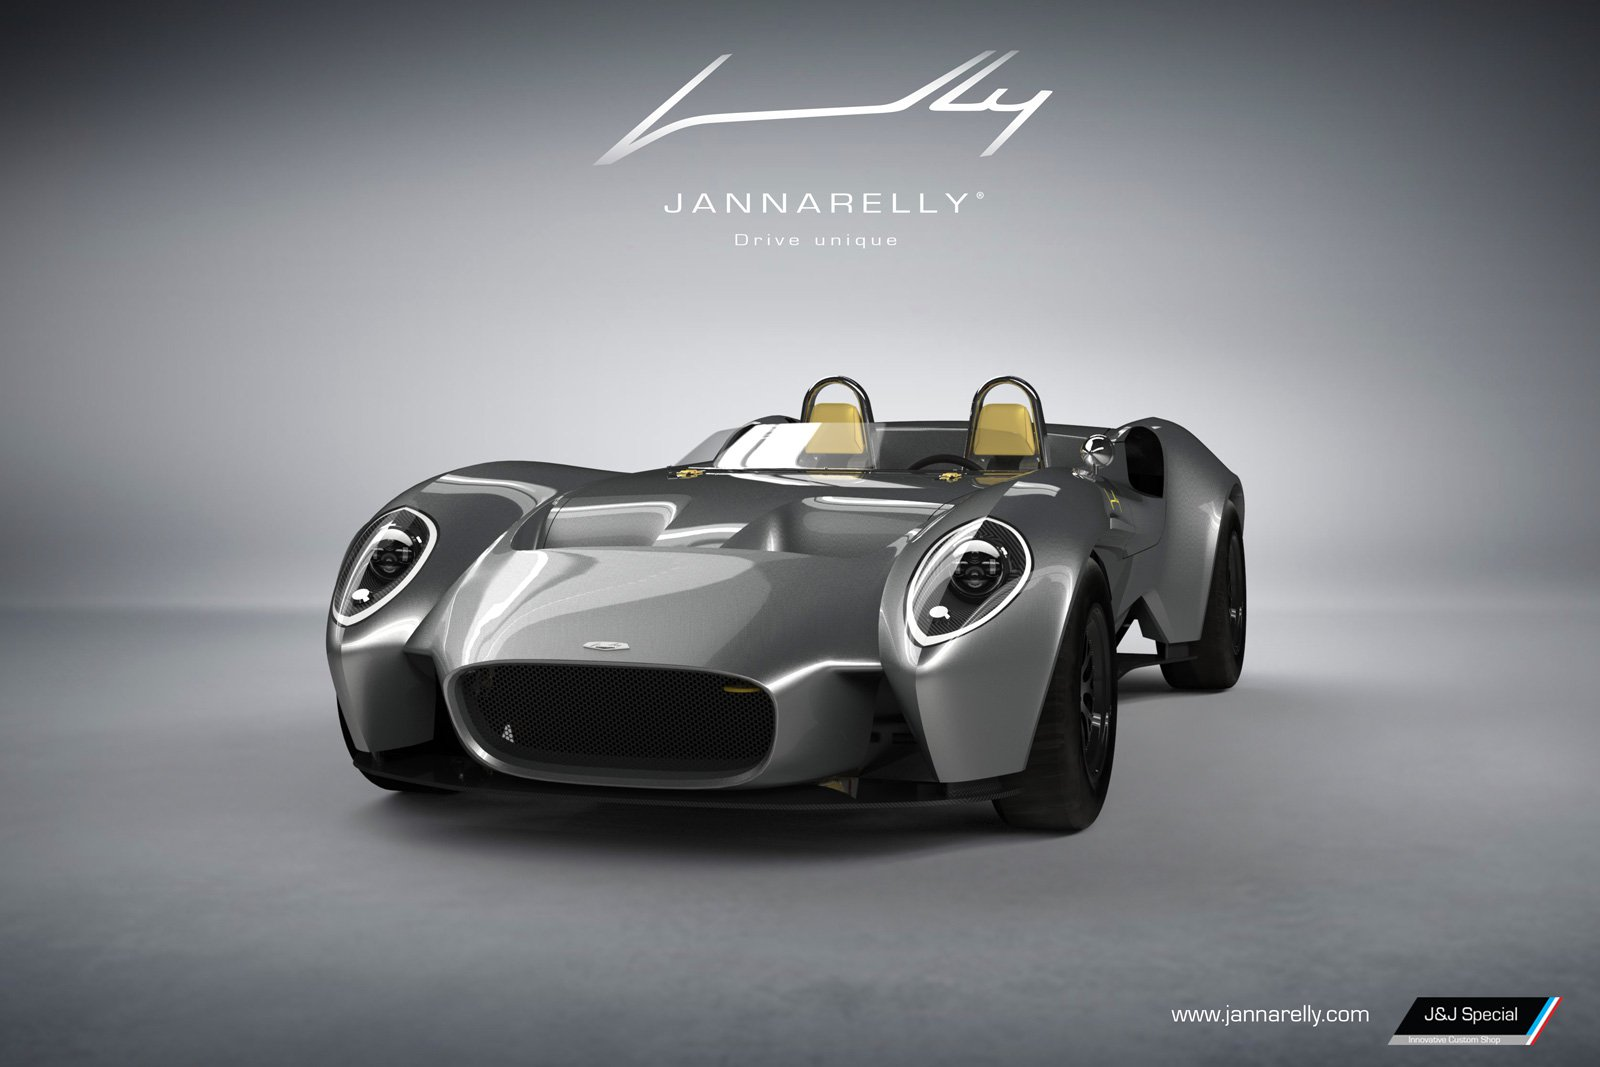 Jannarelly Unveils Its First Car A Retro Looking Supercar That